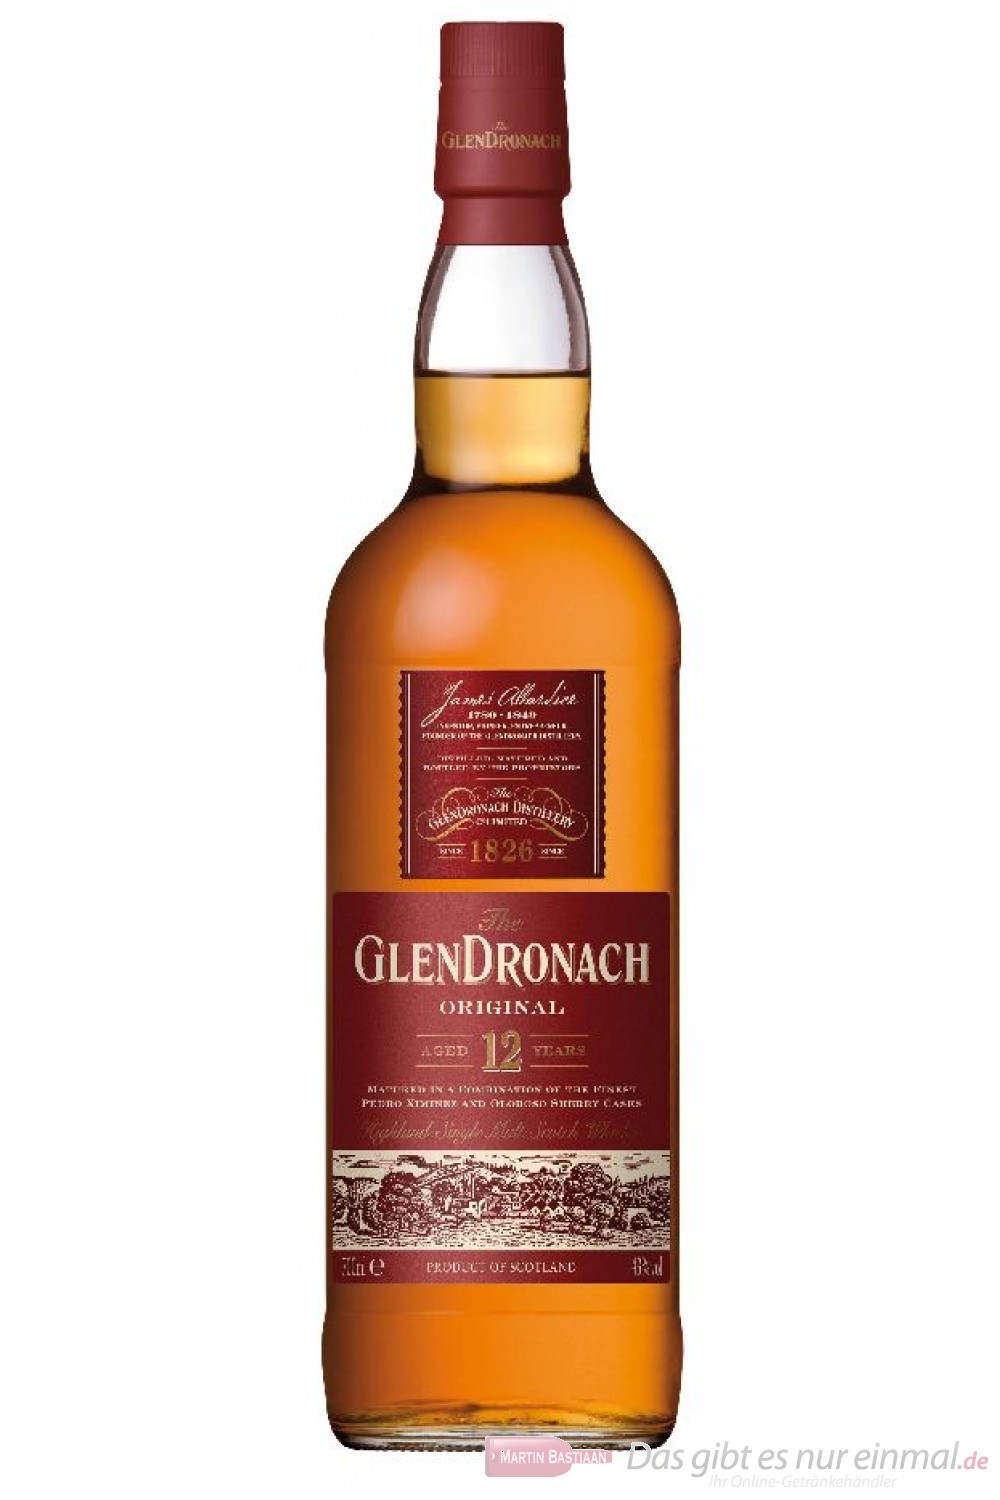 Glendronach 12 Years Highland Single Malt Scotch Whisky 40% 0,7l Flasche